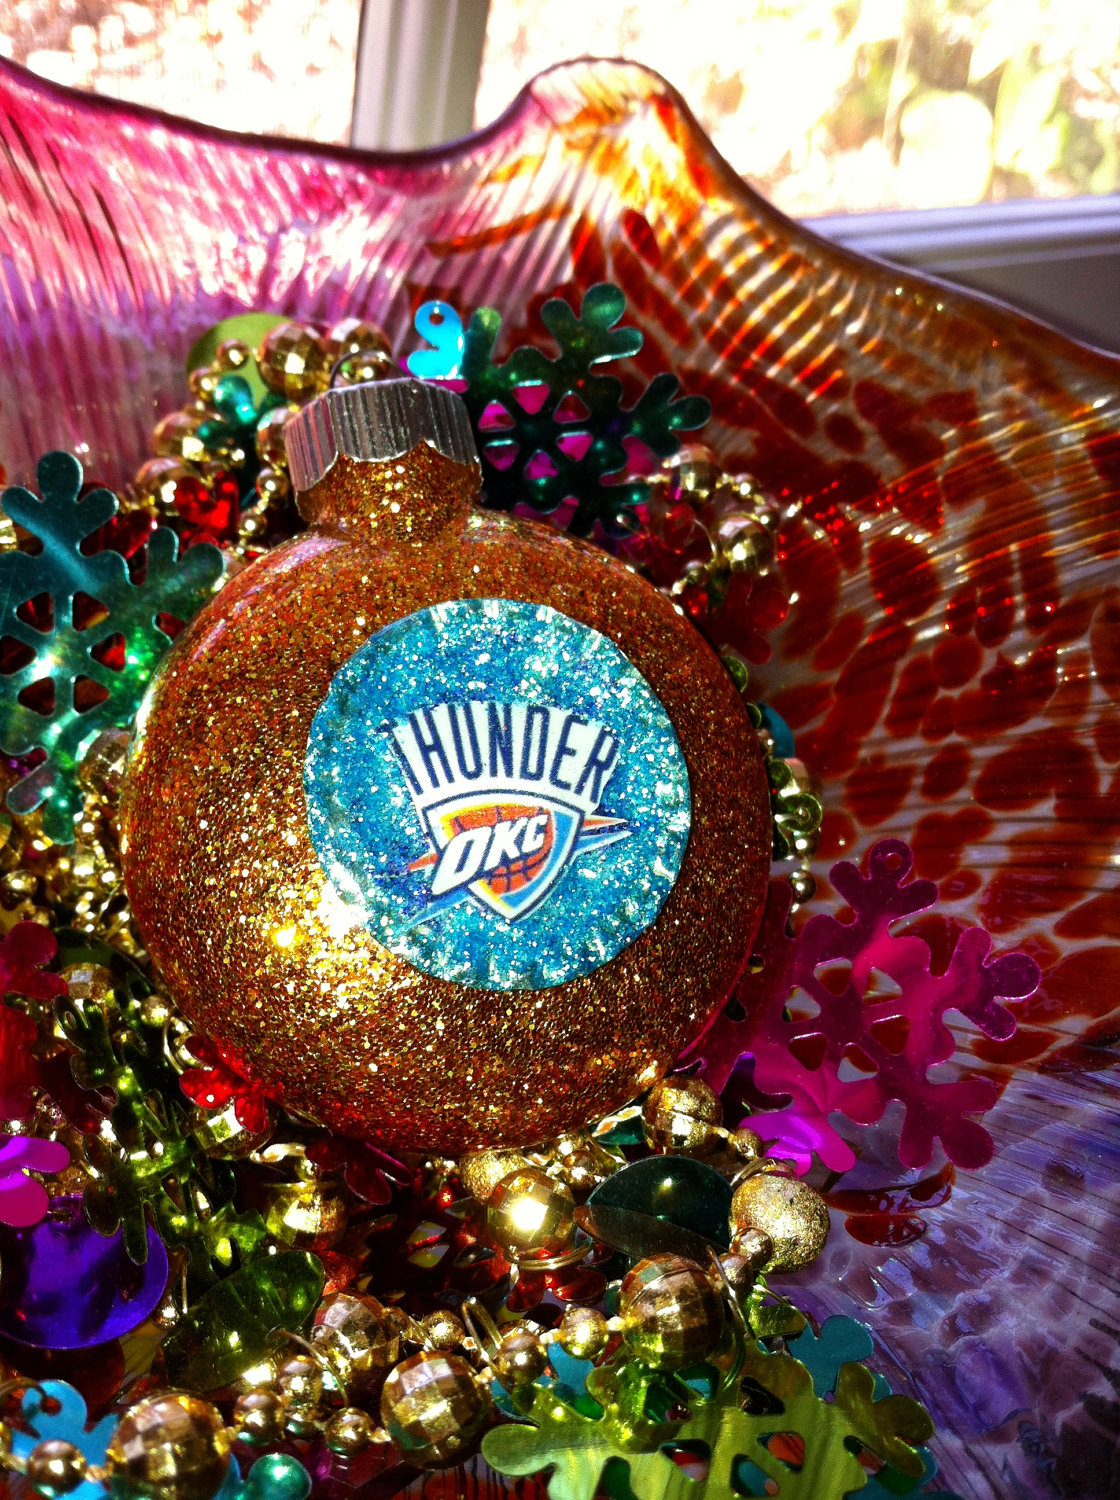 okc-thunder-ornament-wallpaper-wp3808850